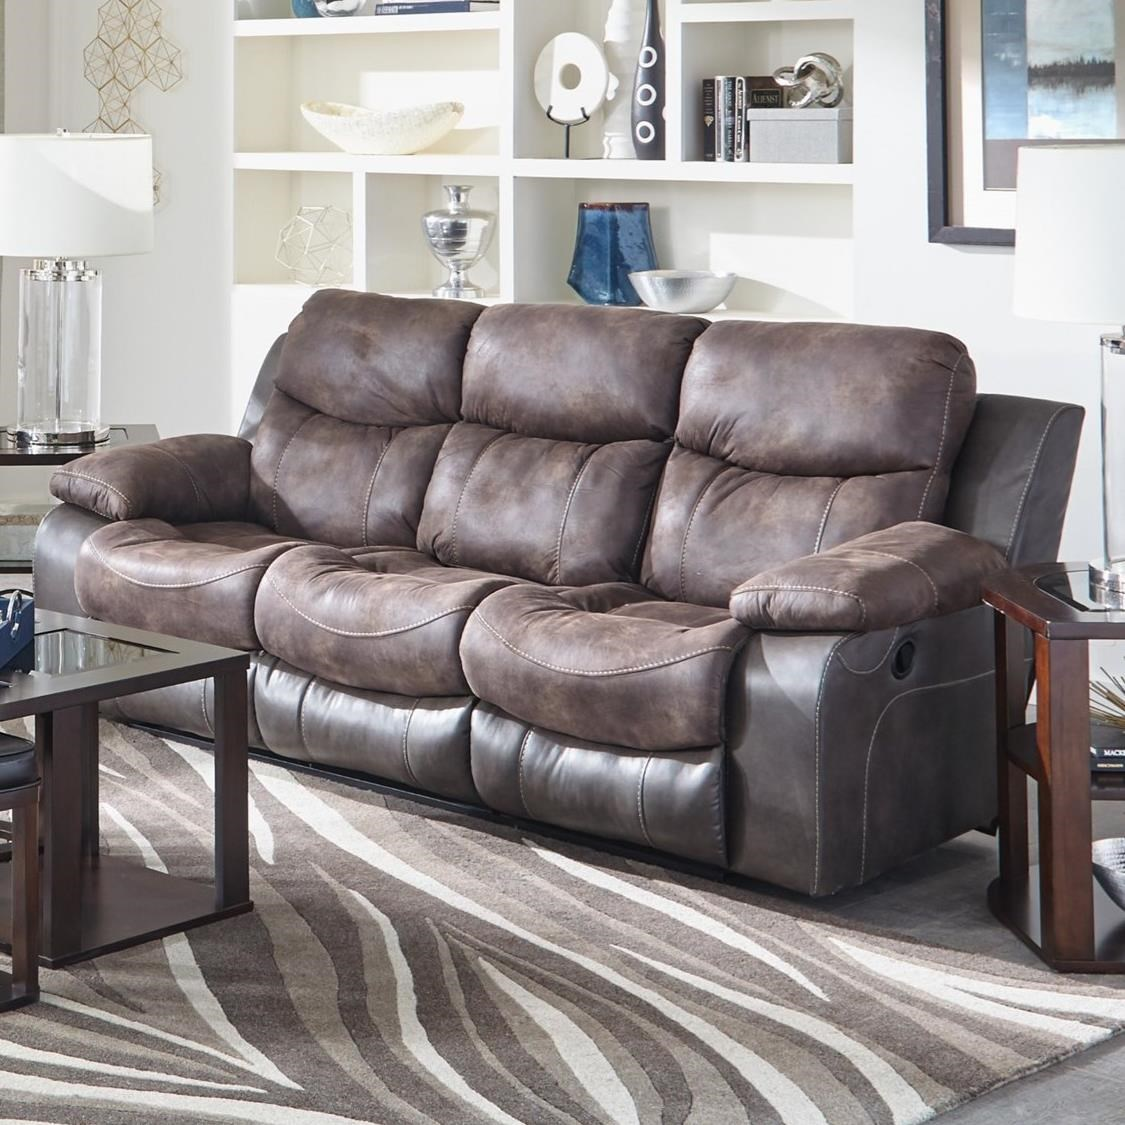 Power Reclining Sofa With Drop Down Table By Catnapper Wolf And